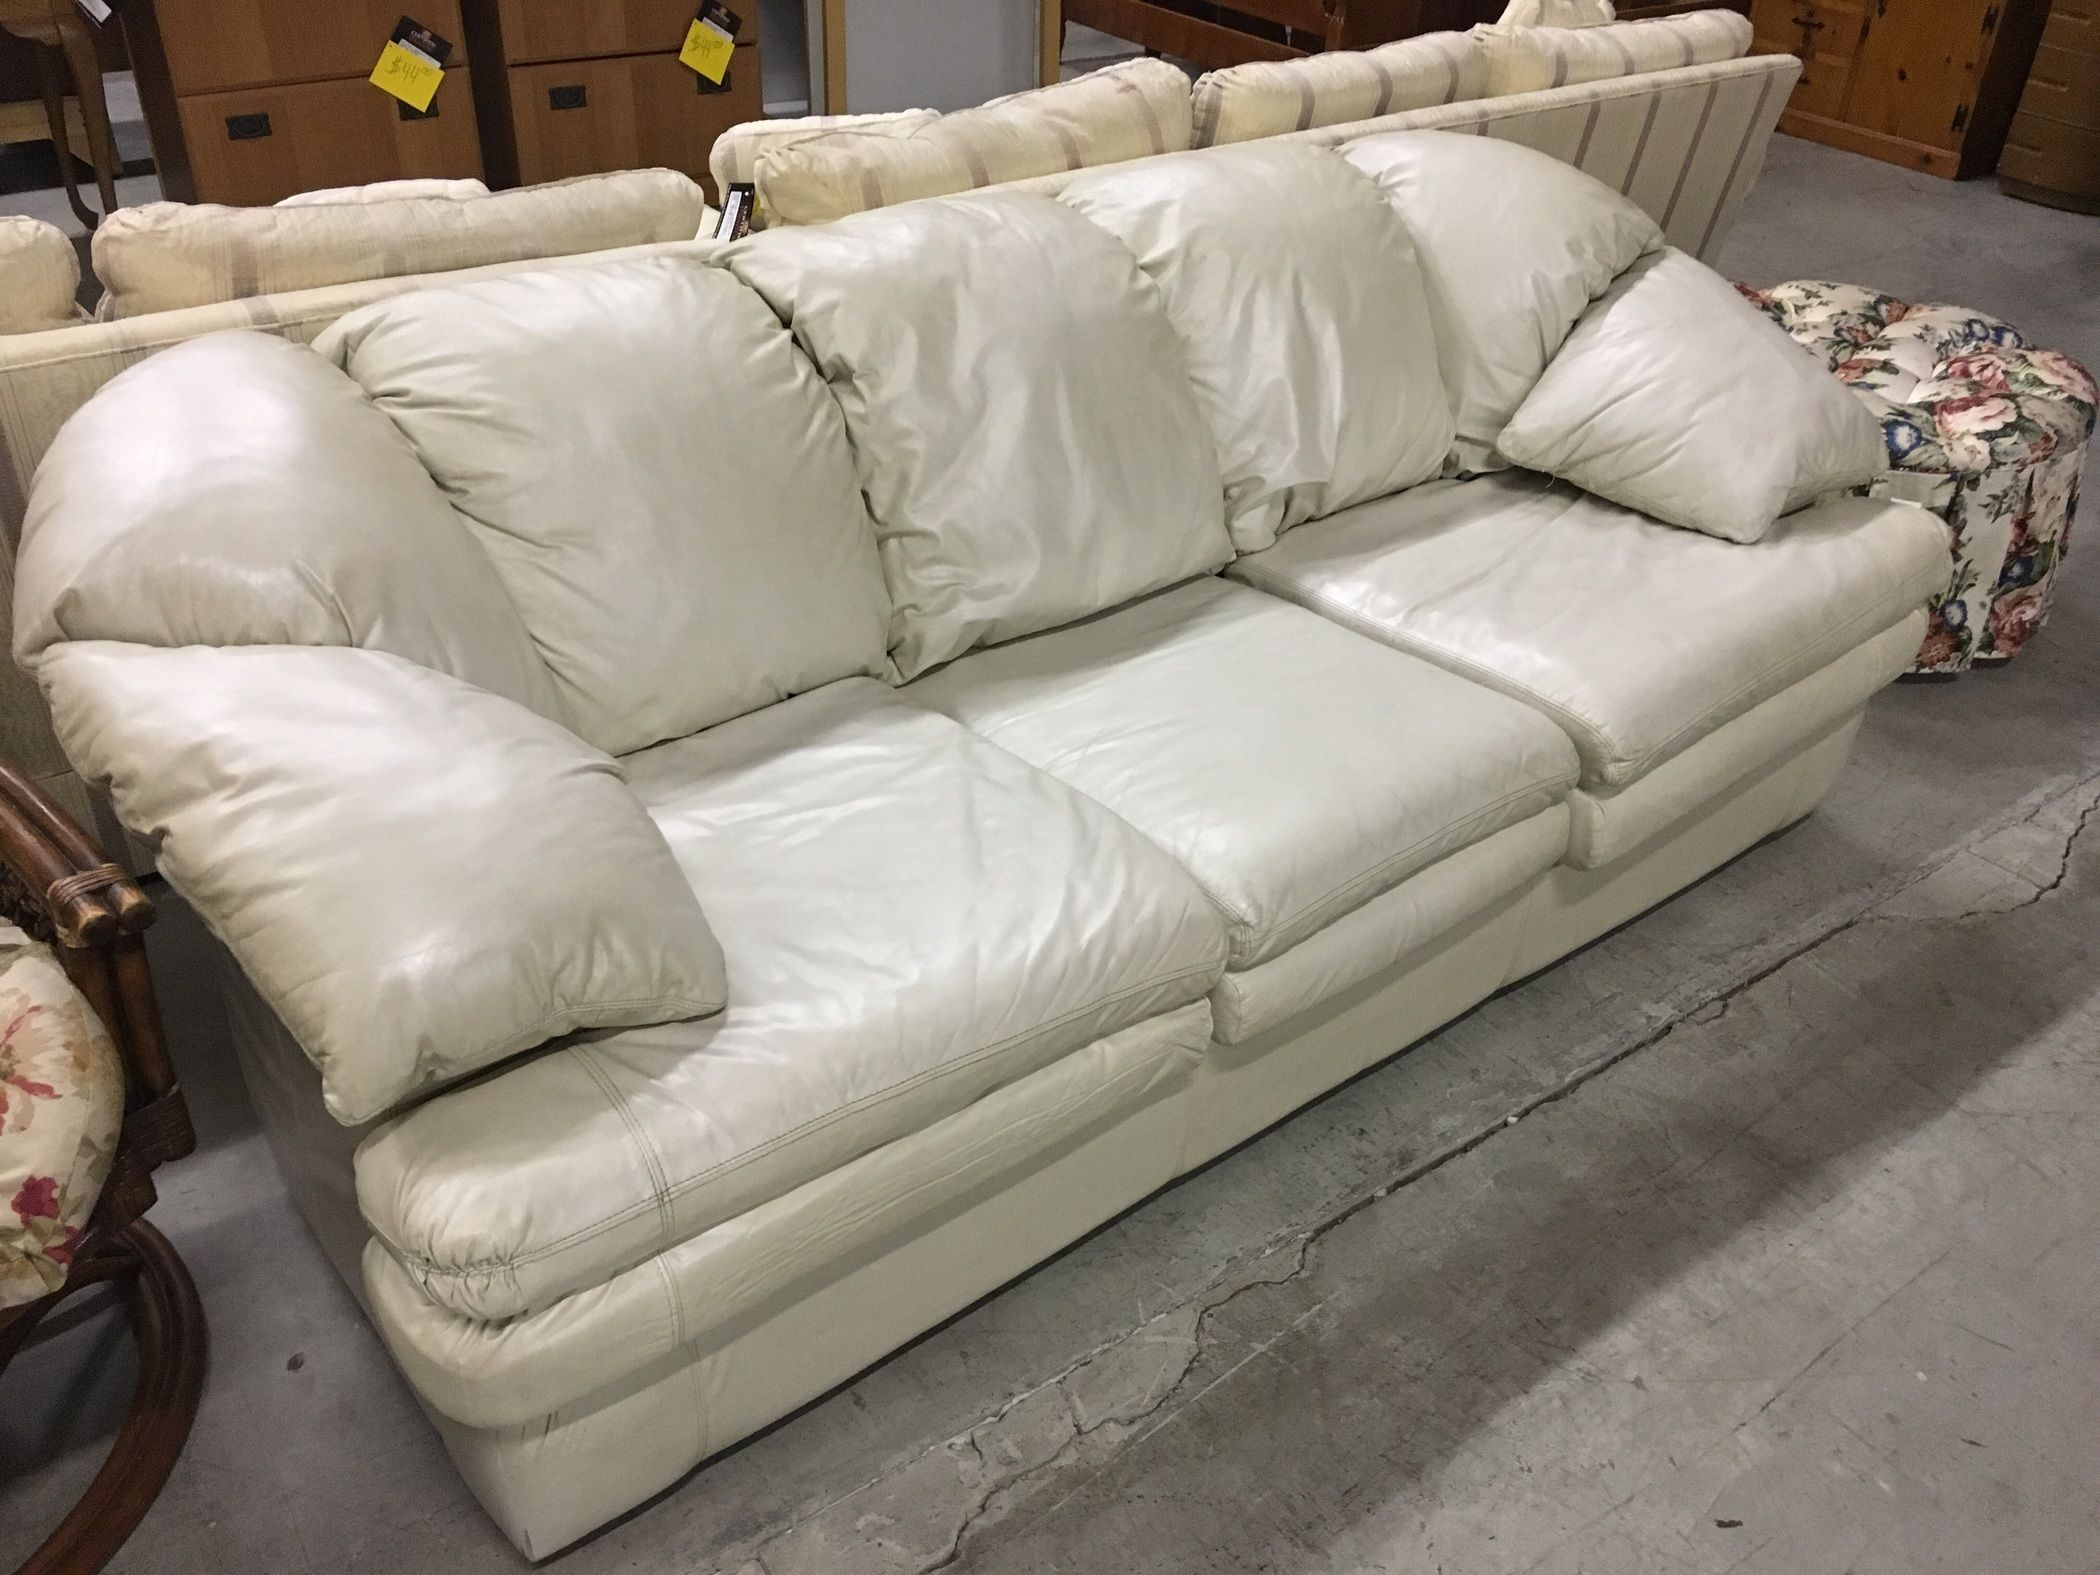 Viewpoint Leather Sleeper Sofa Allegheny Furniture Consignment